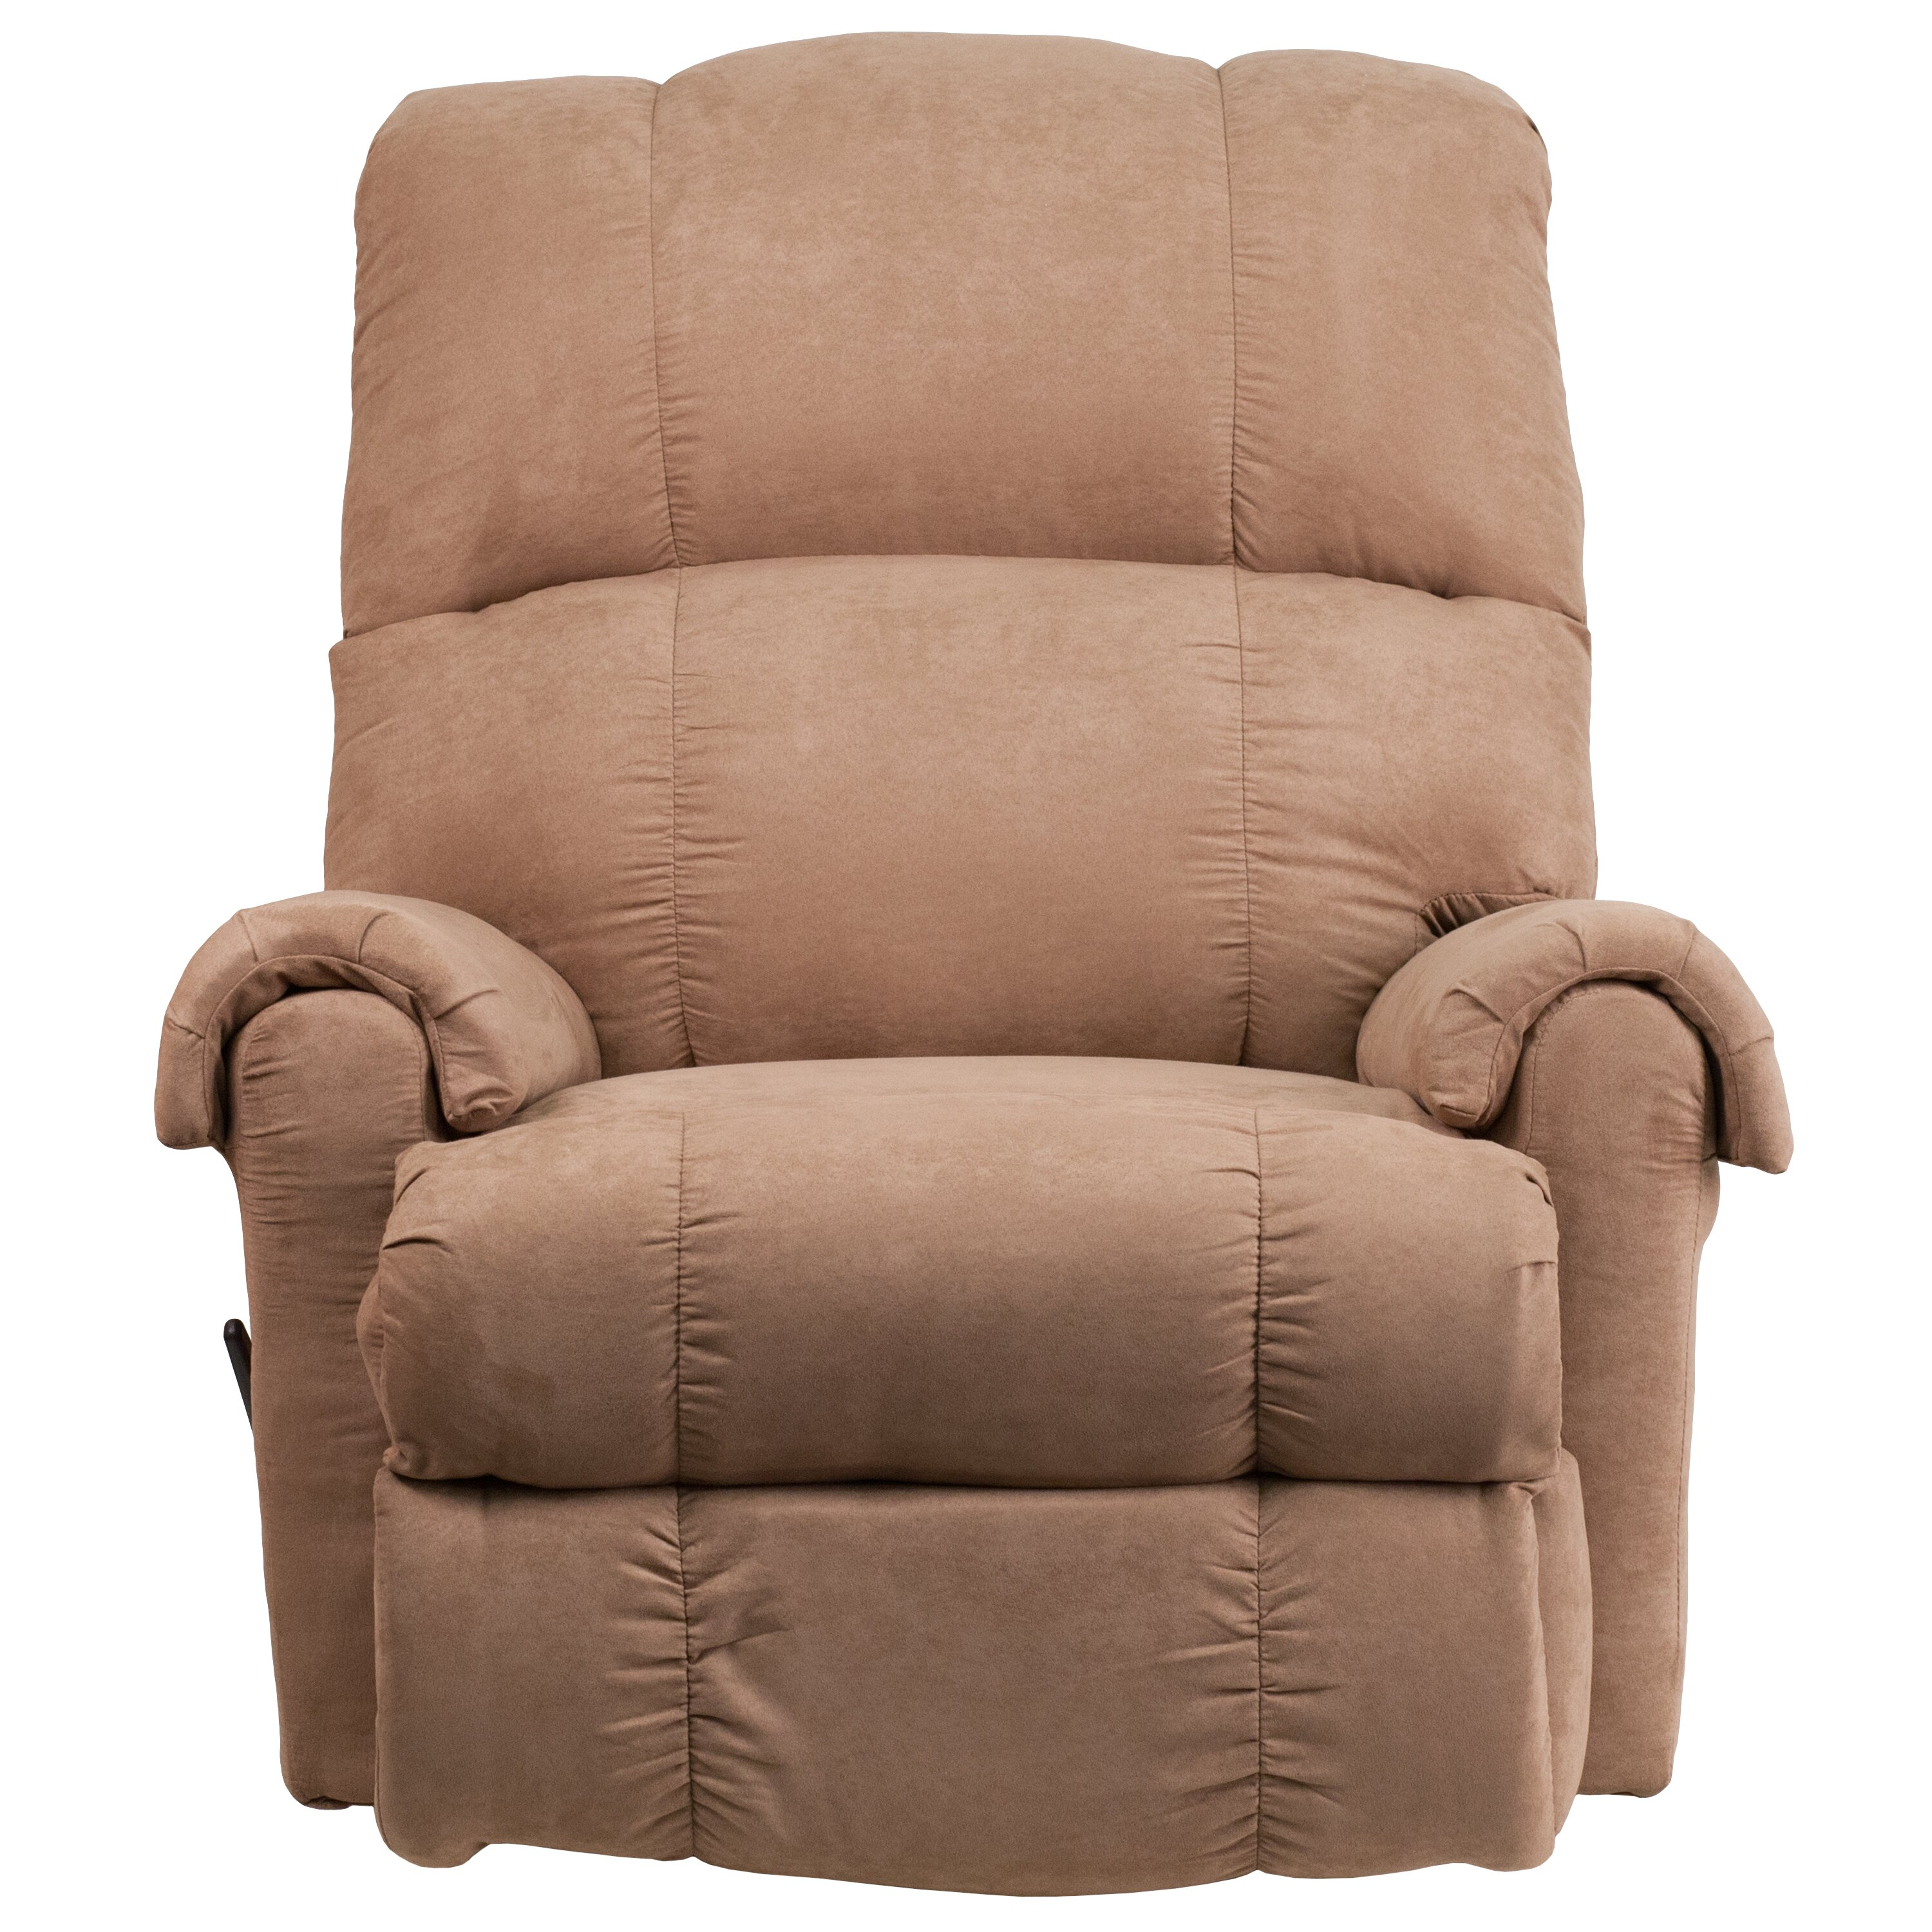 Living Room Furniture Recliners lane recliners reviews